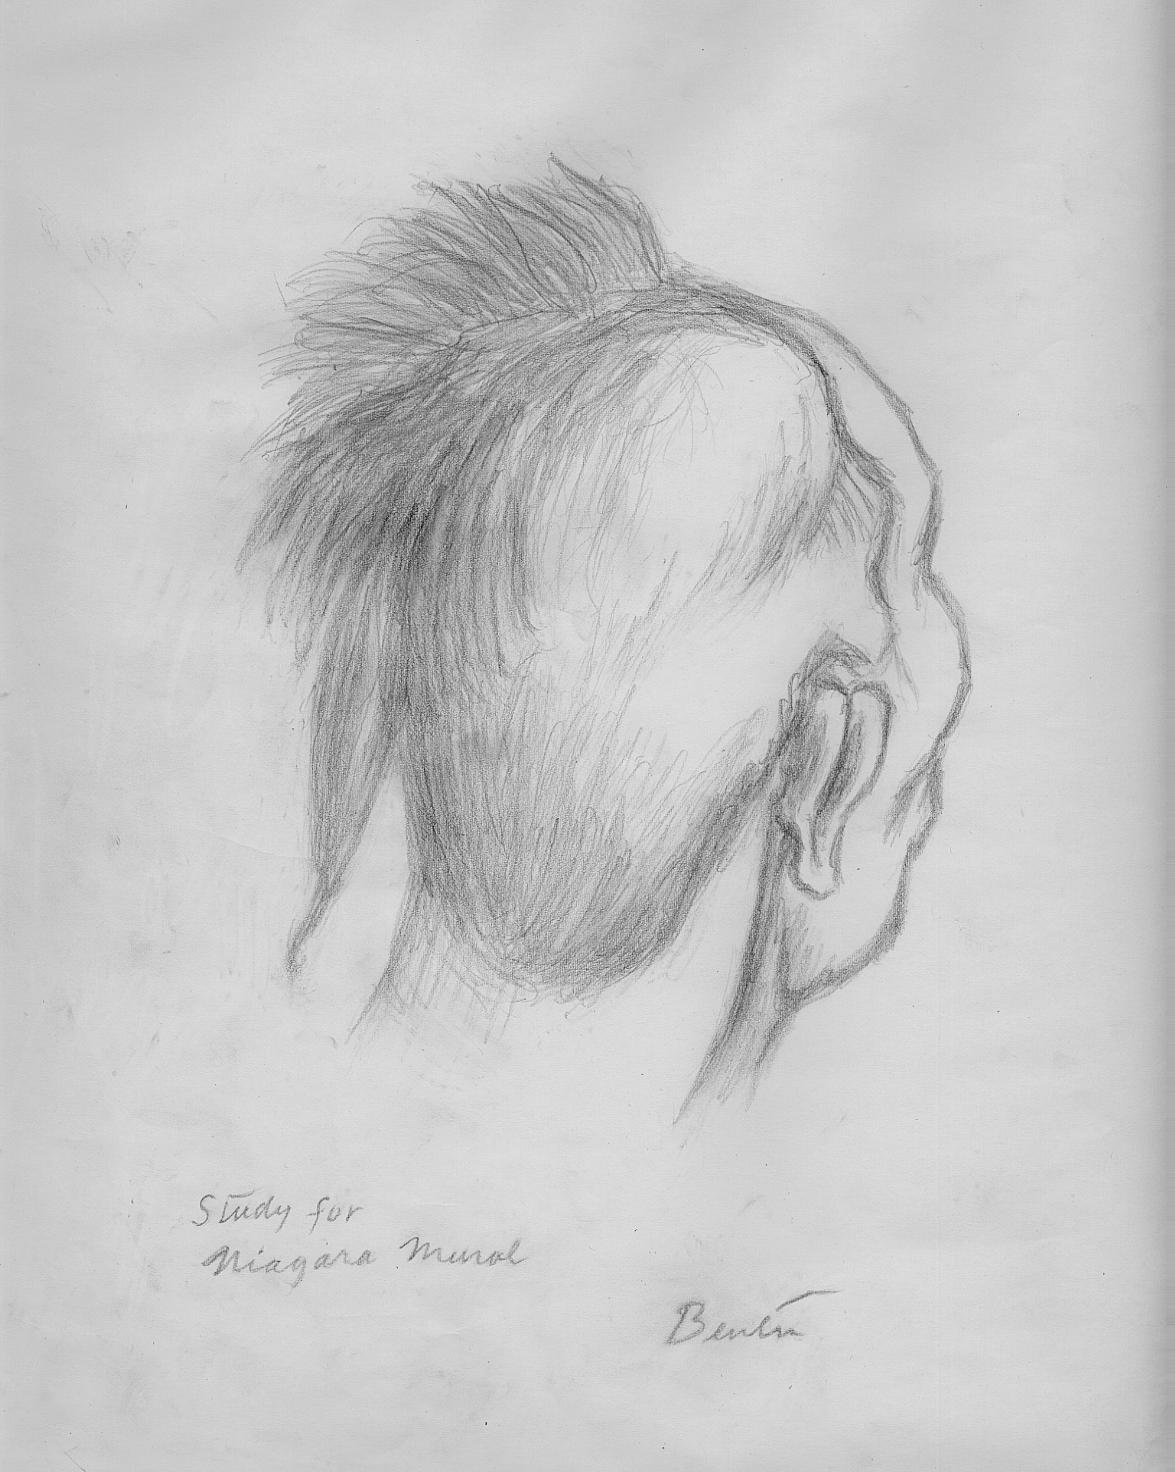 Eagle Feather Pencil Drawing Pencil drawing  circa 1960 Eagle Feather Pencil Drawing